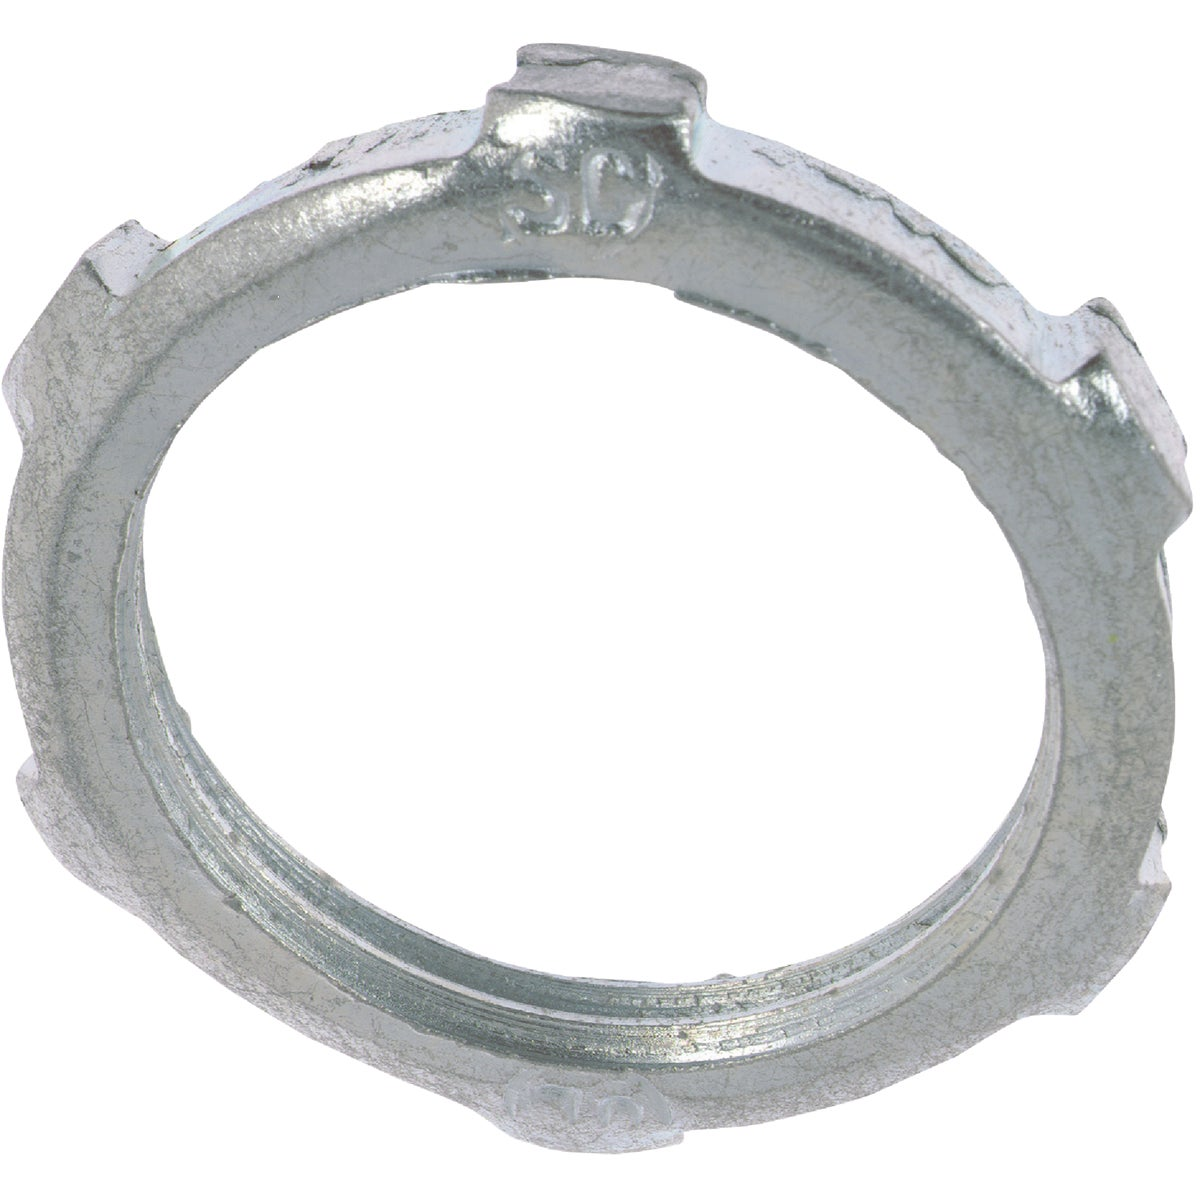 "2-1/2"" LOCKNUT - LN1071 by Thomas & Betts"